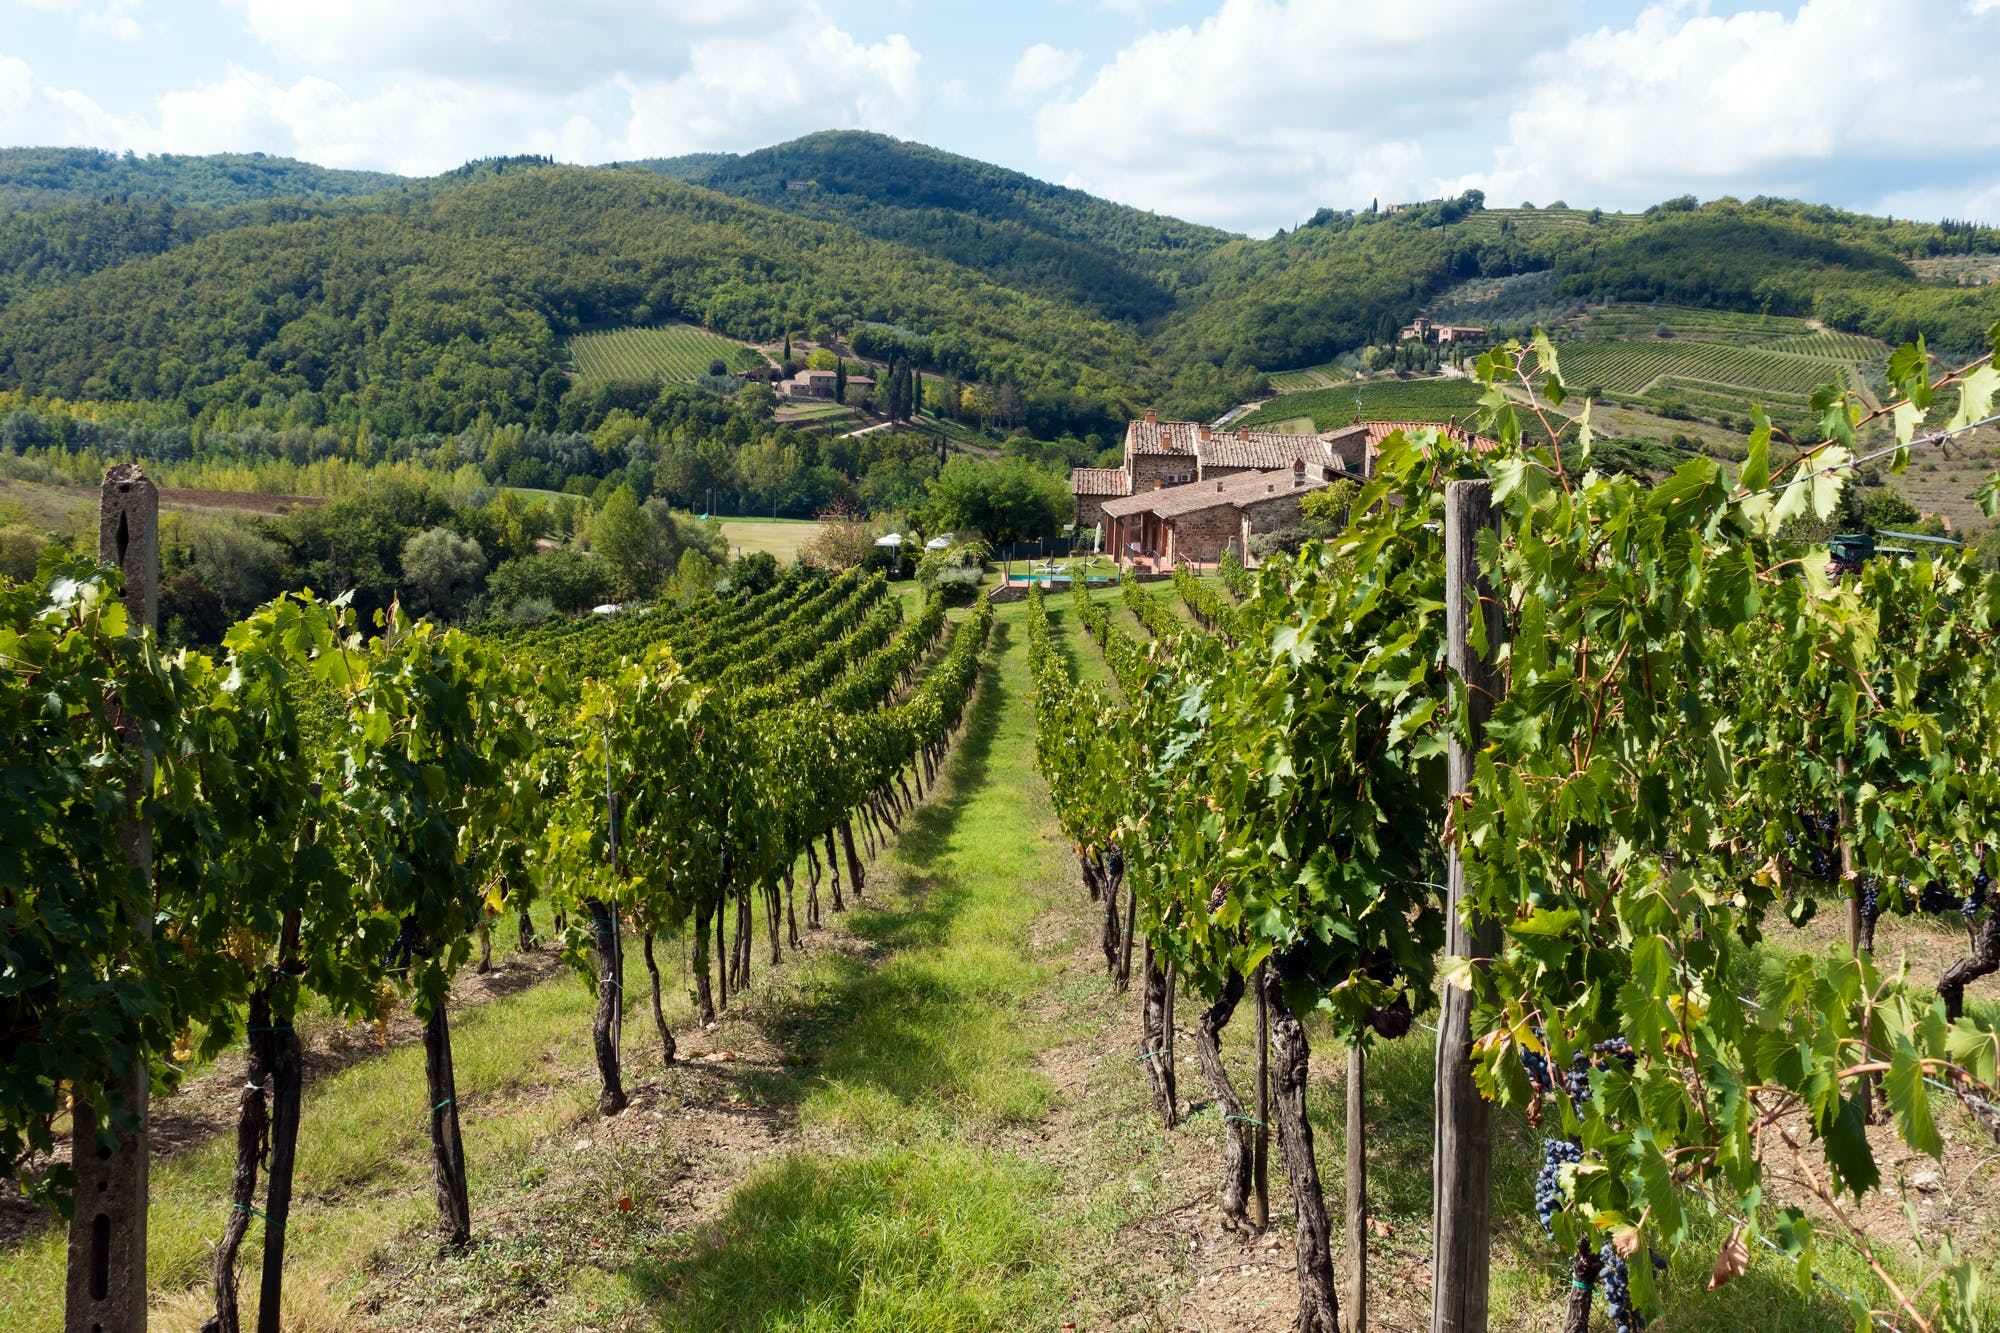 Chianti,Italy:Travel Guide to Chianti Wine Region in Tuscany